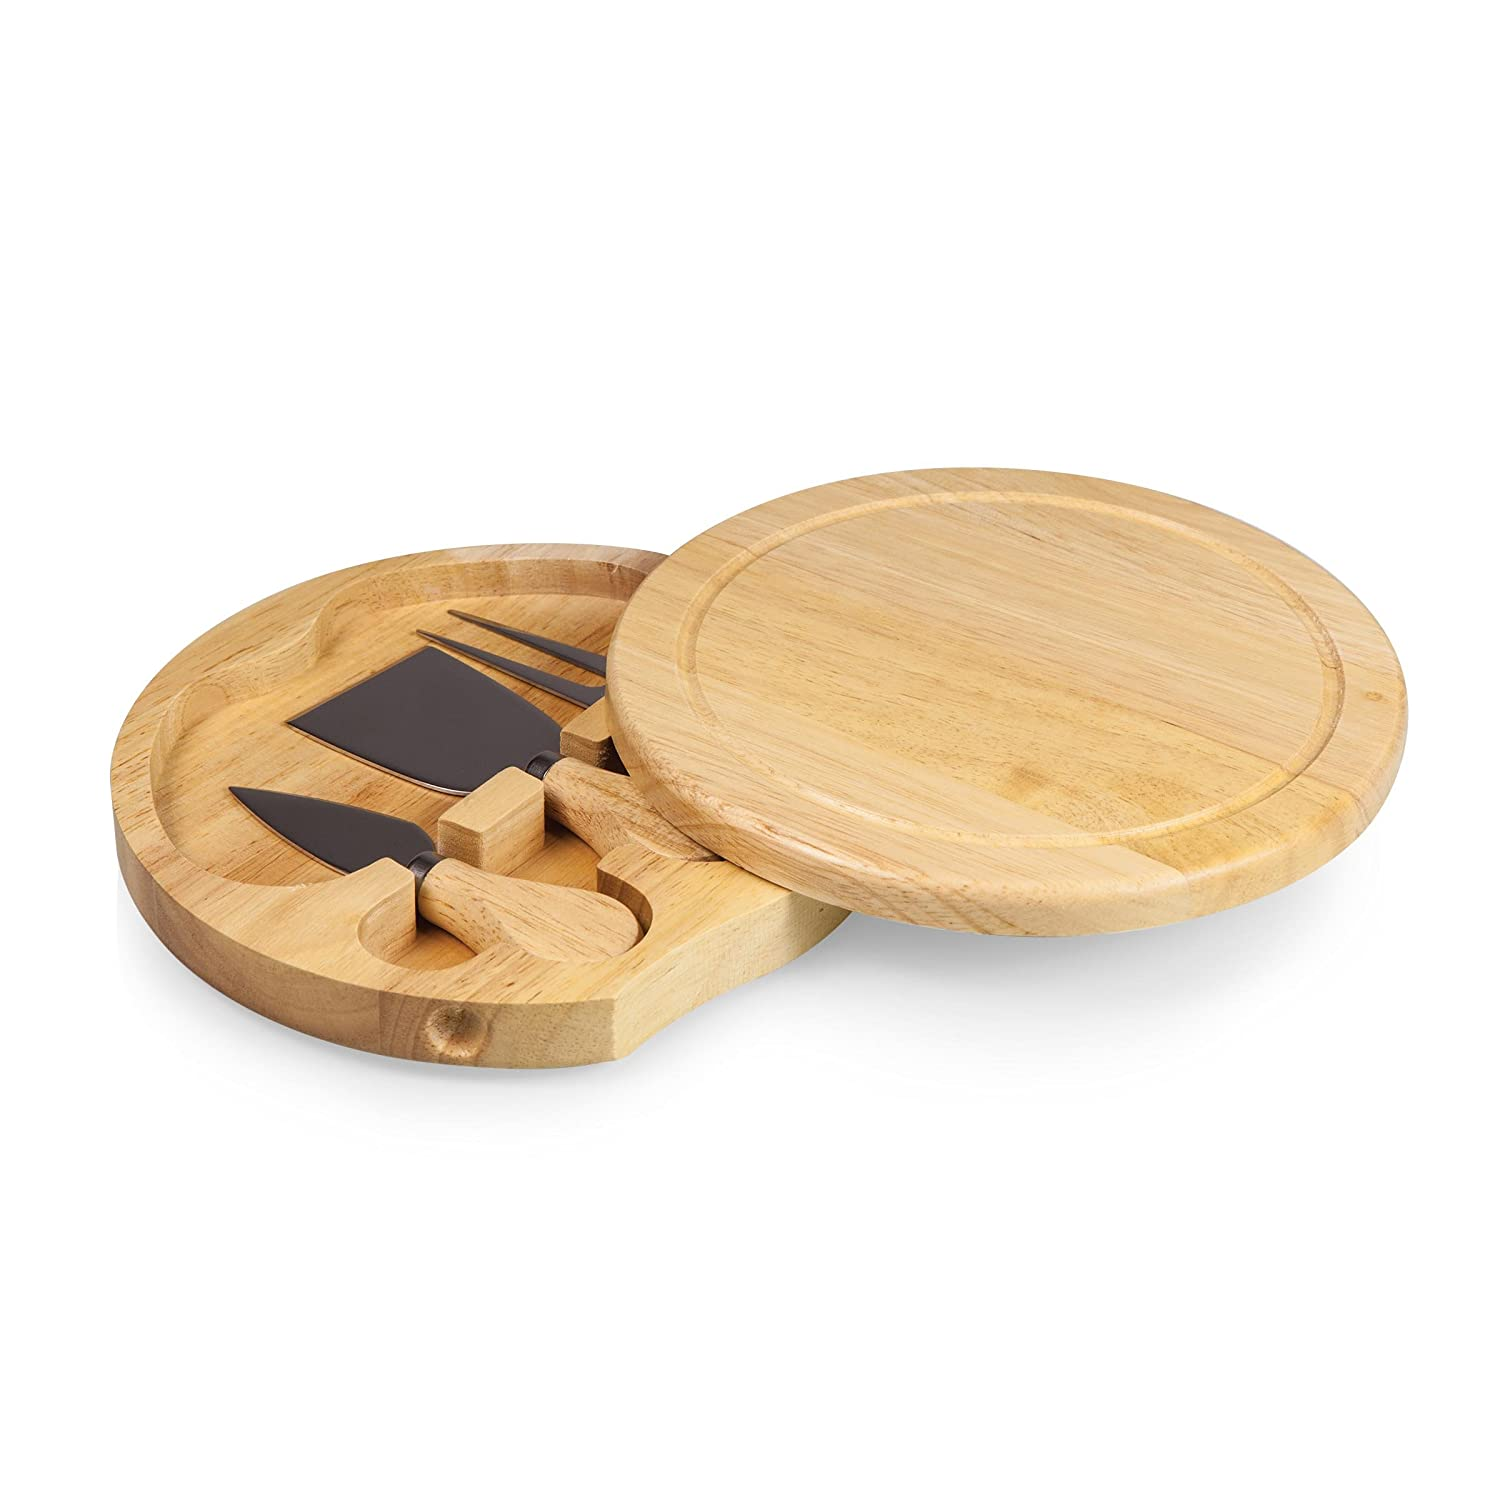 Picnic Time Brie Cheese Set TOSCANA - a Picnic Time brand 878-00-505